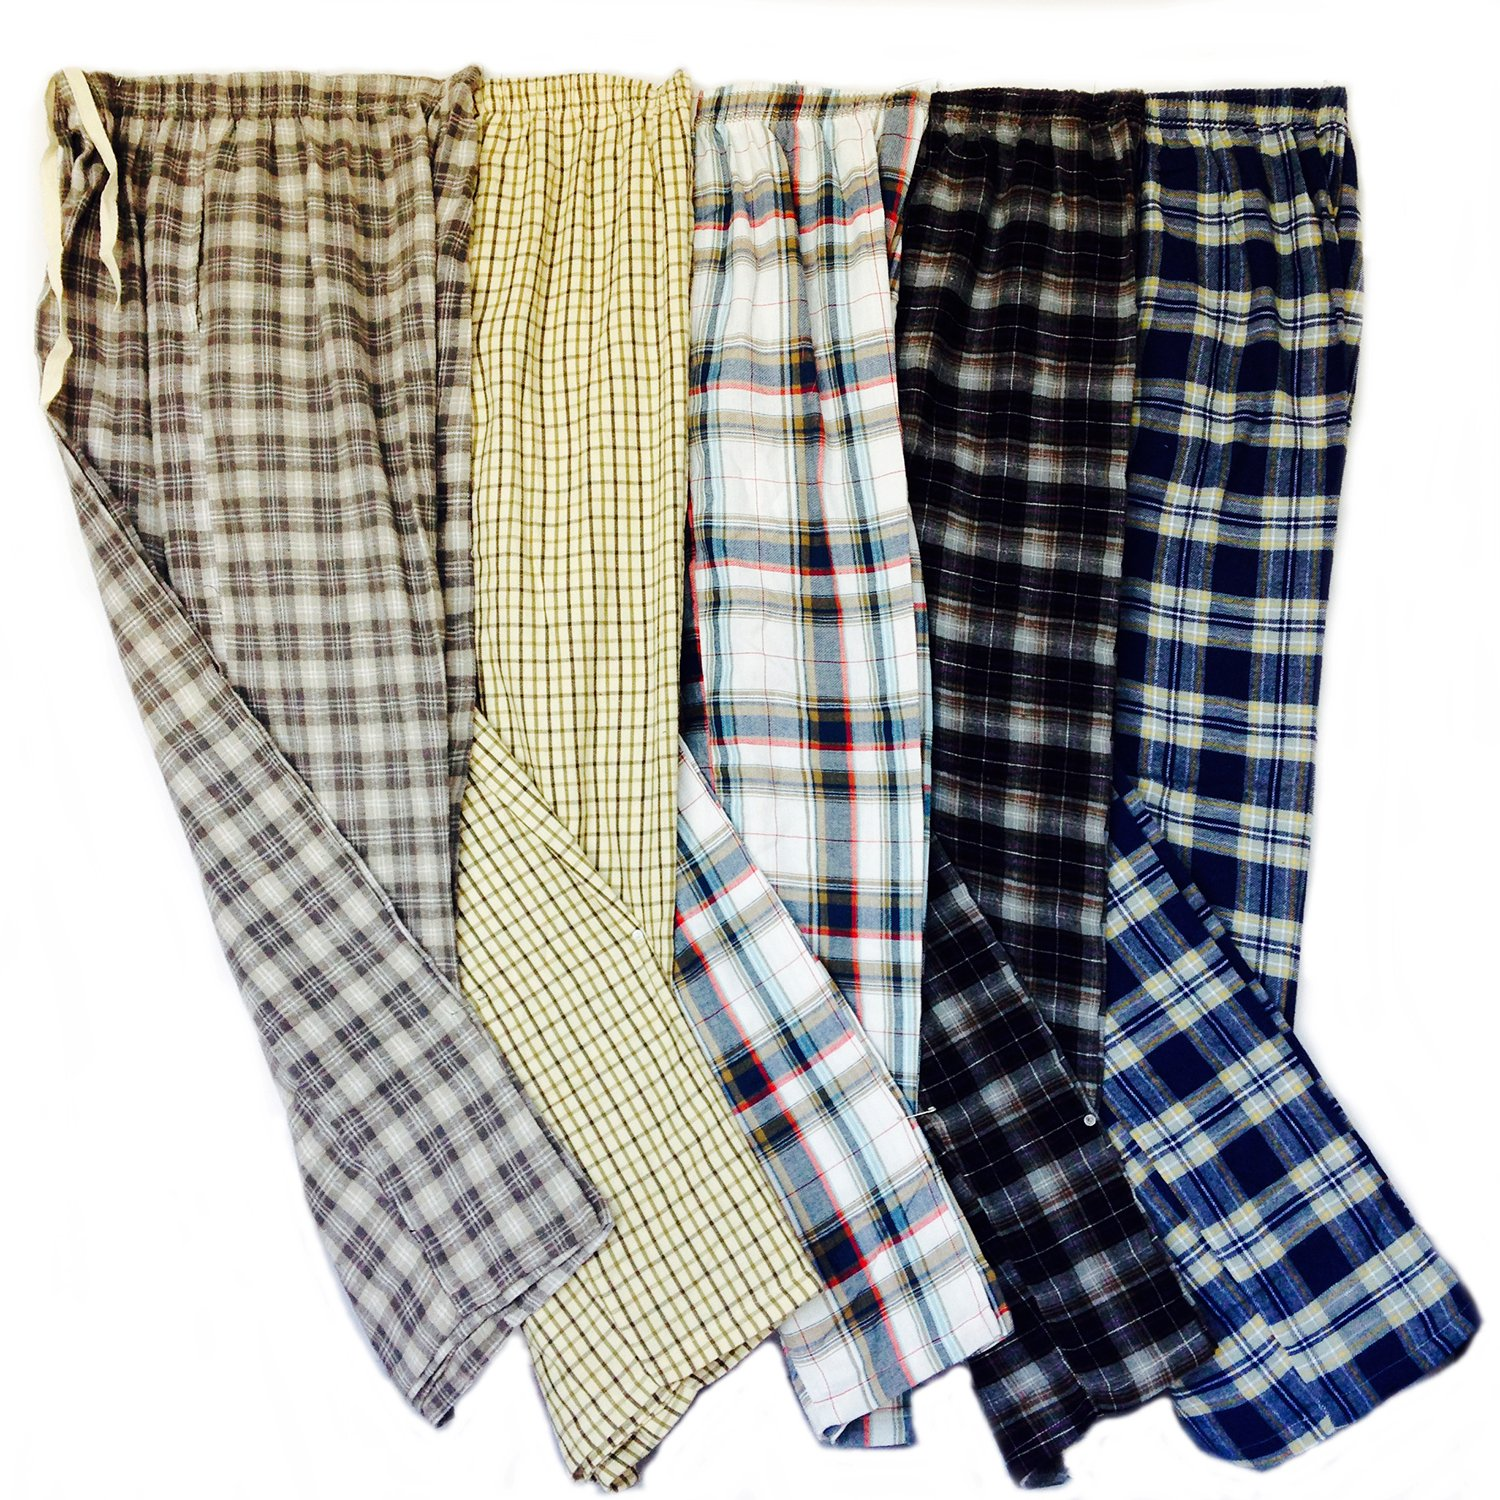 3 Pack - Mens Plaid 100% Cotton Warm Pajama Bottoms Sleepwear (3 Pants) (Medium)